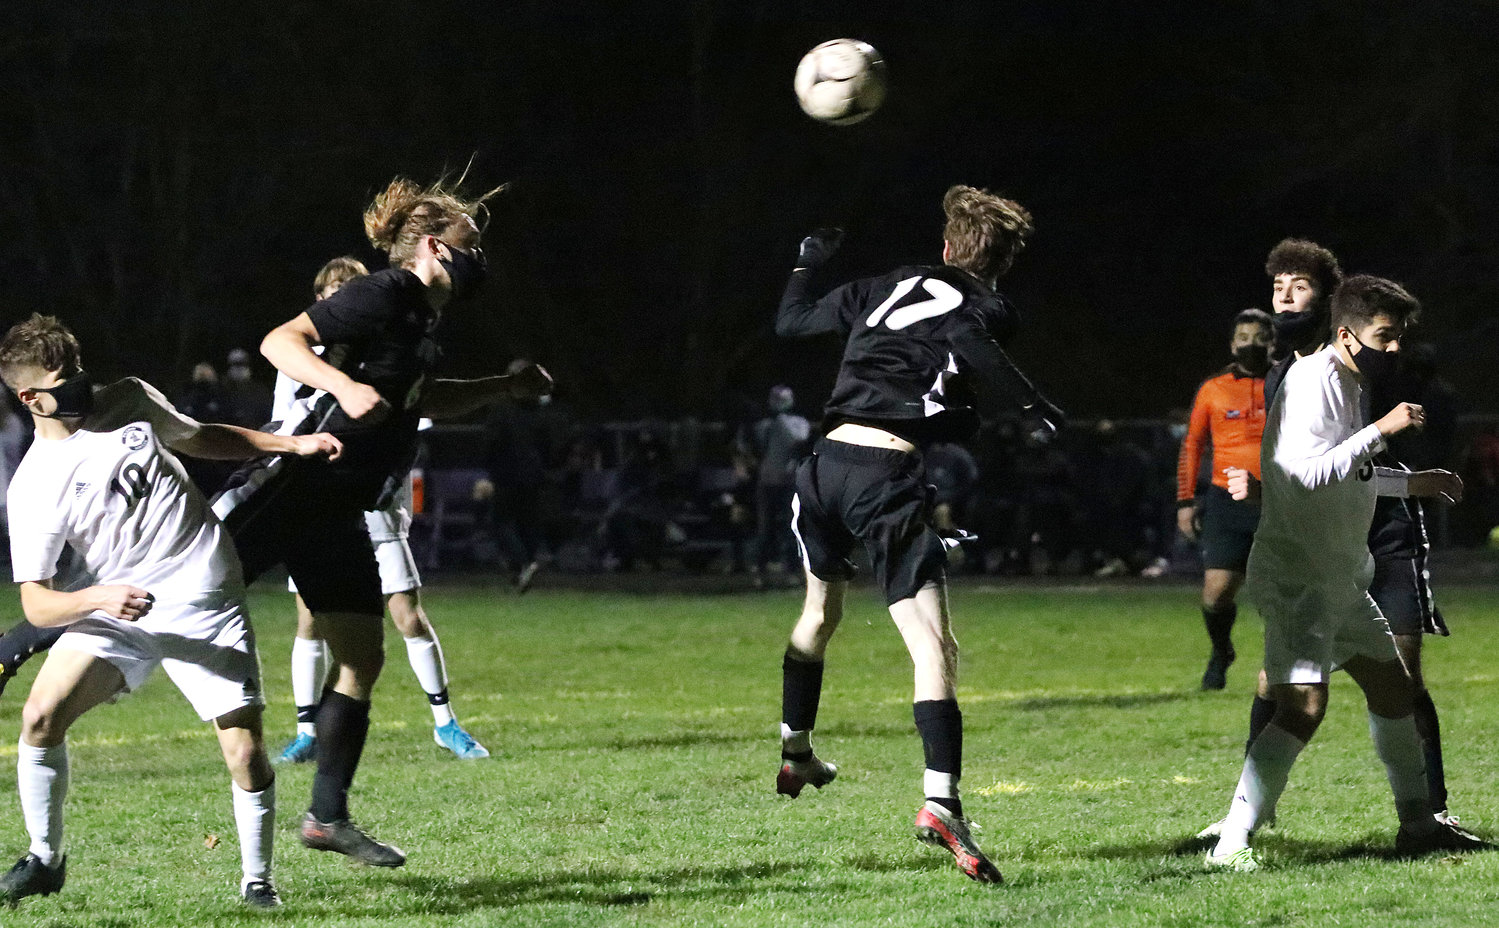 Tristan Tamuliates (left) heads the ball into the Pilgrim goal to give the Huskies an early 1-0 lead in the first half.